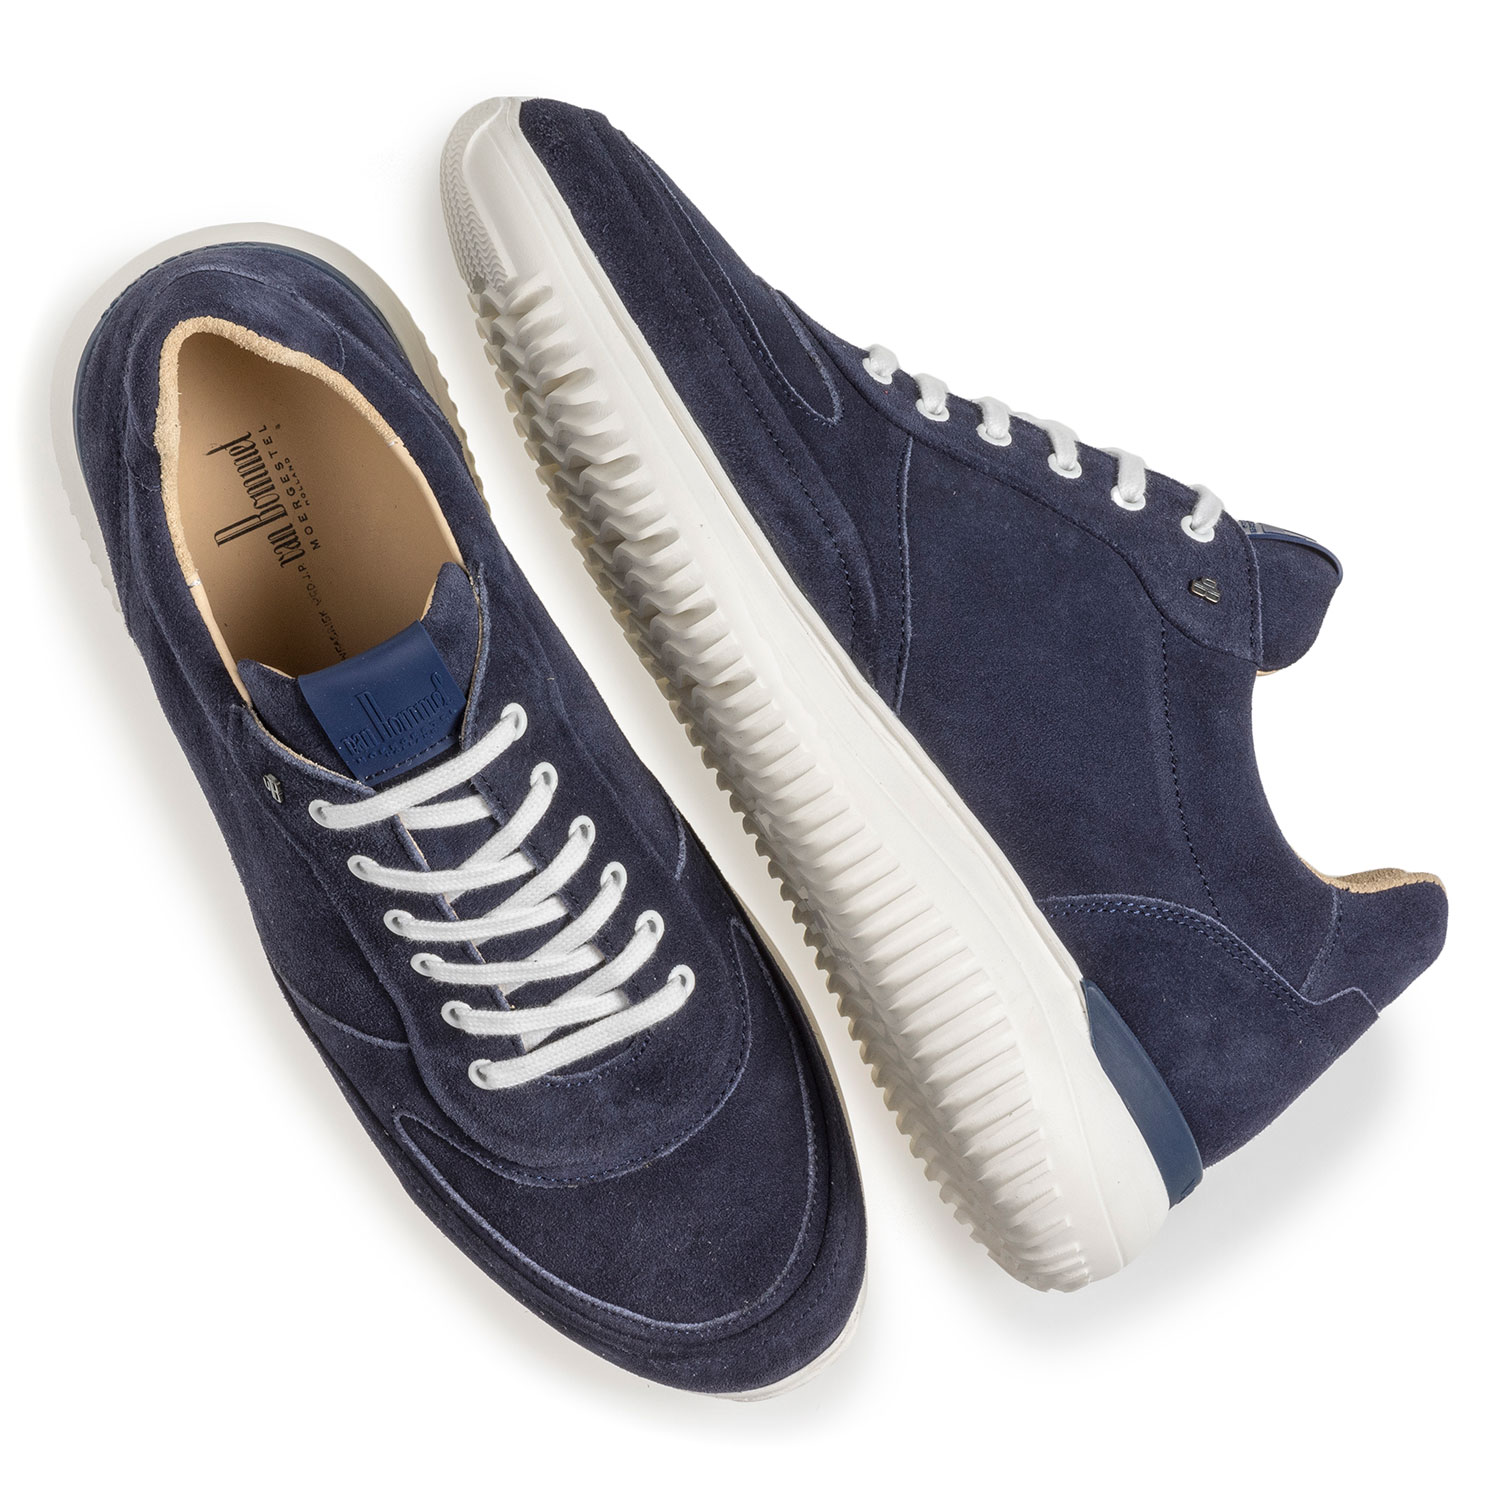 16302/08 - Blue suede leather sneaker